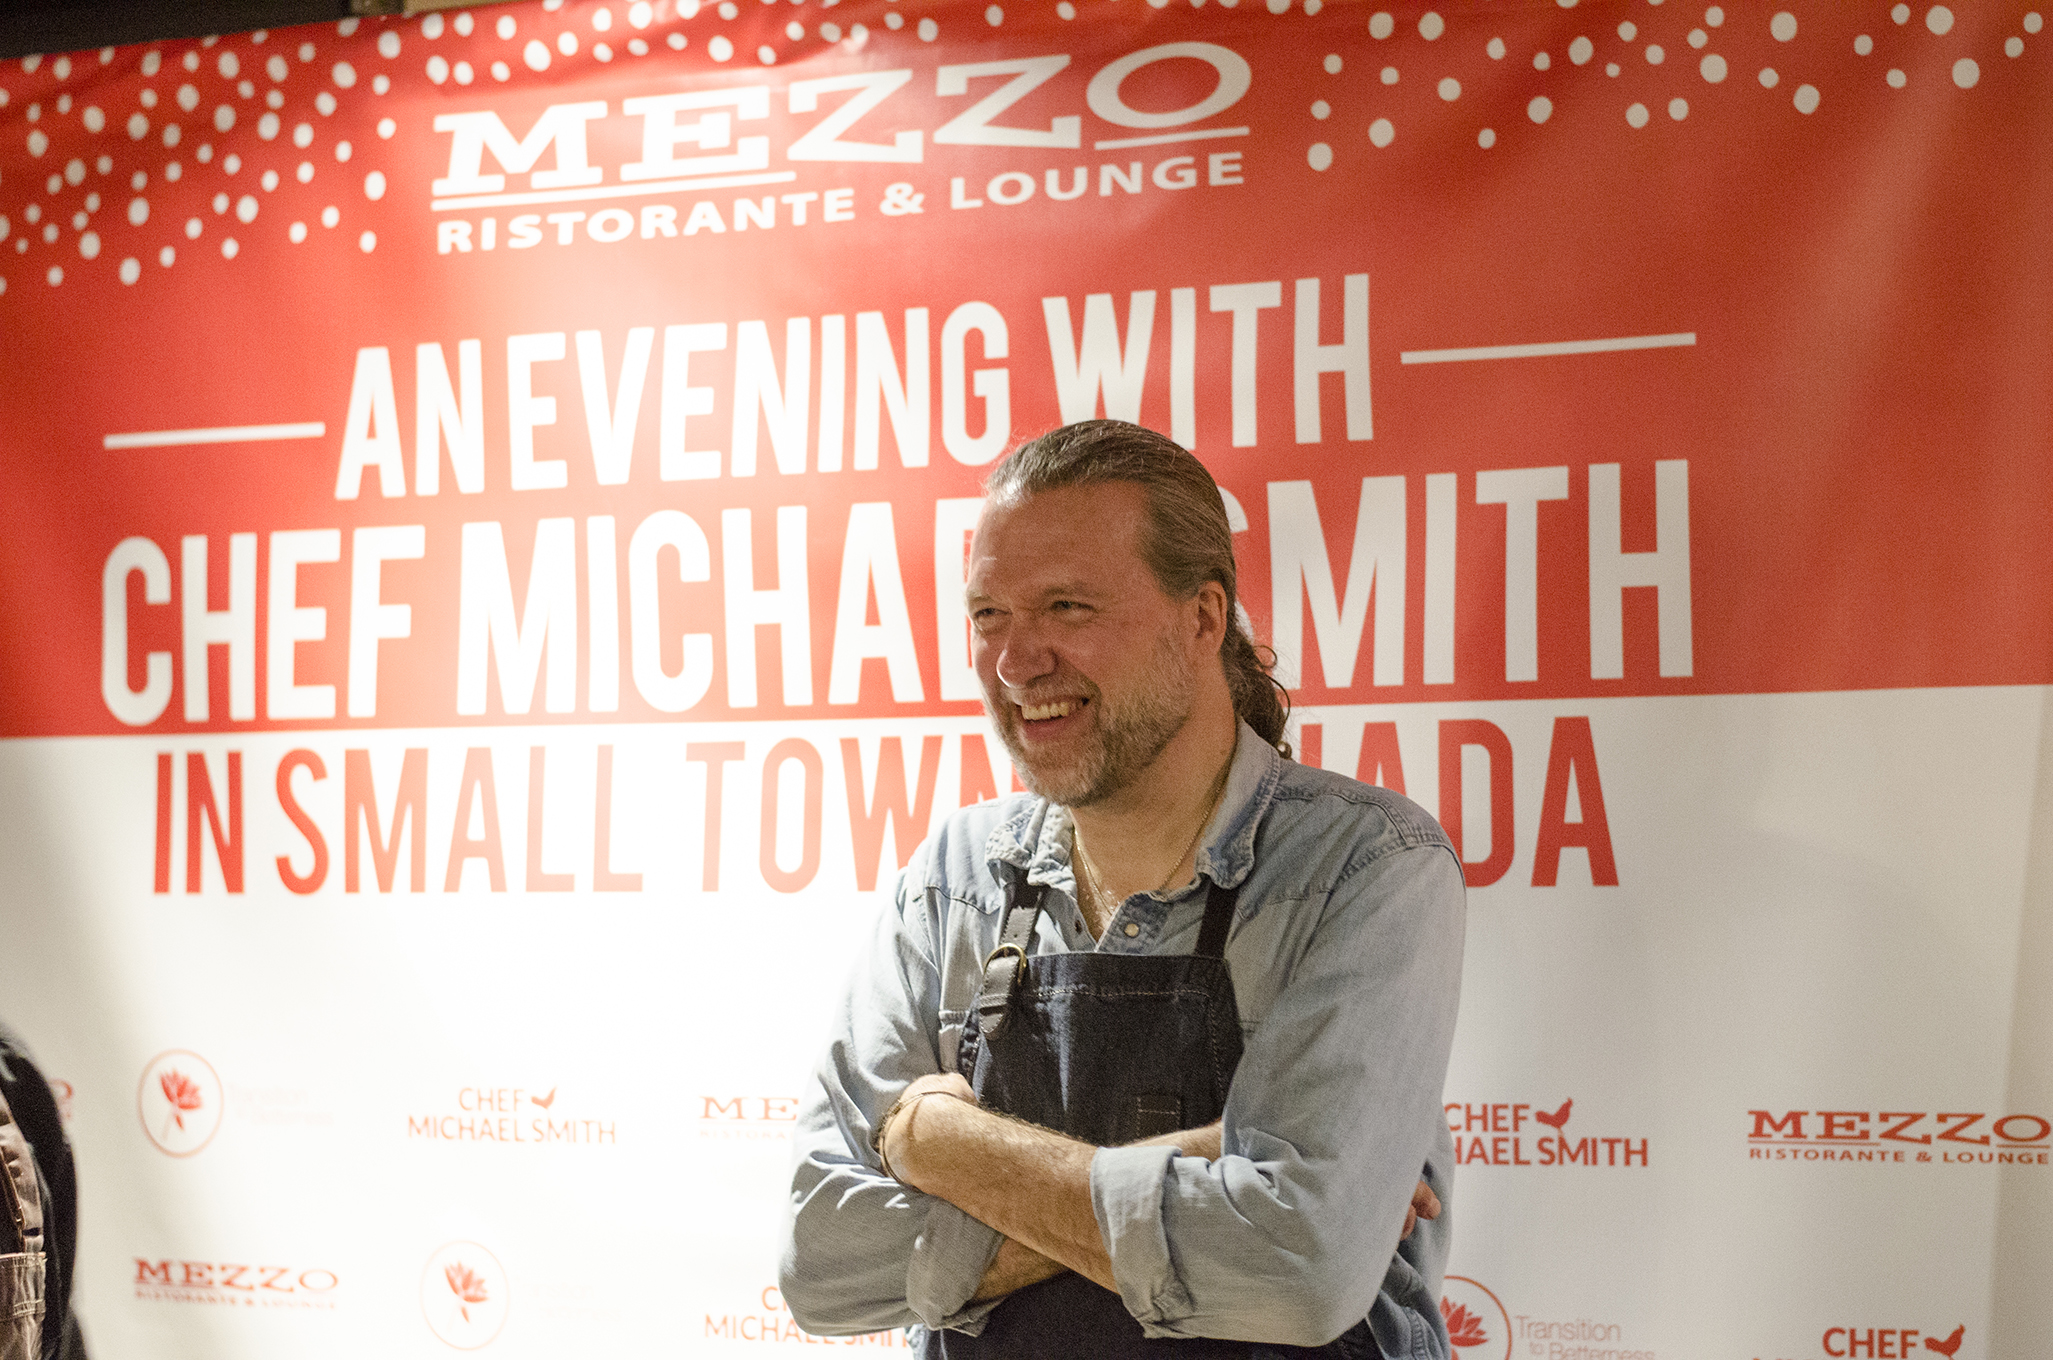 Chef Michael Smith cooked in the kitchen at Mezzo Restaurant in April 2018.